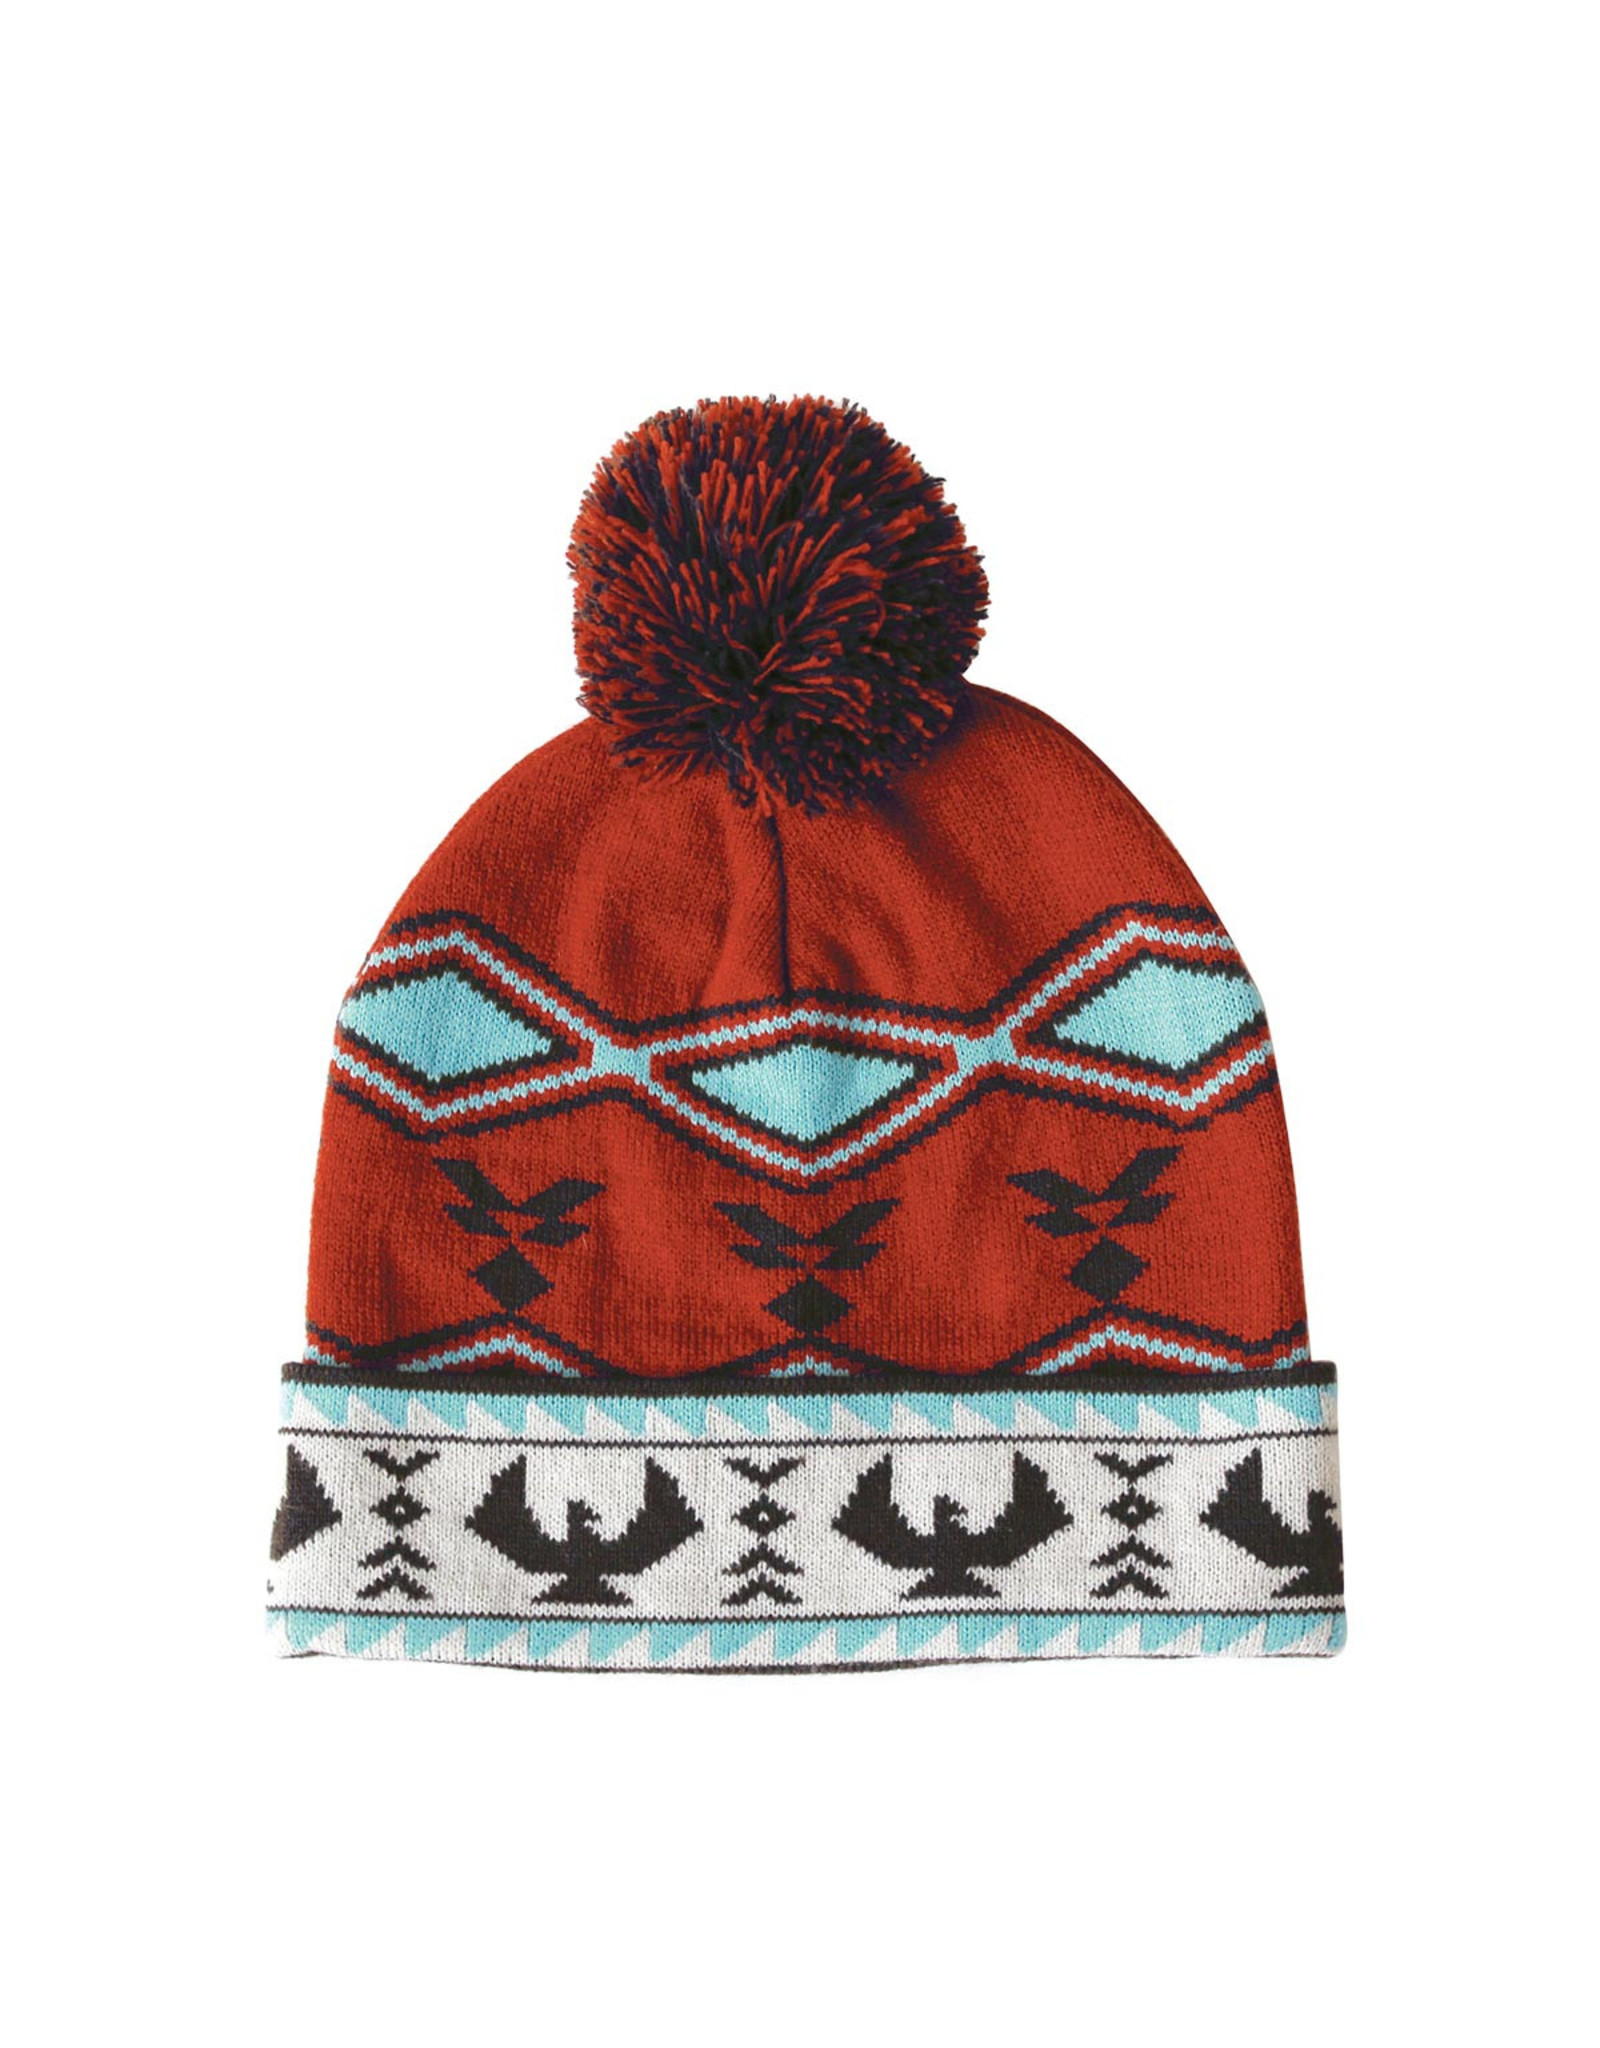 Knitted Tuque with Pom Pom - Salish Weaving Collection - Spirit of the Sky by Leila Stogan (TQSSS)